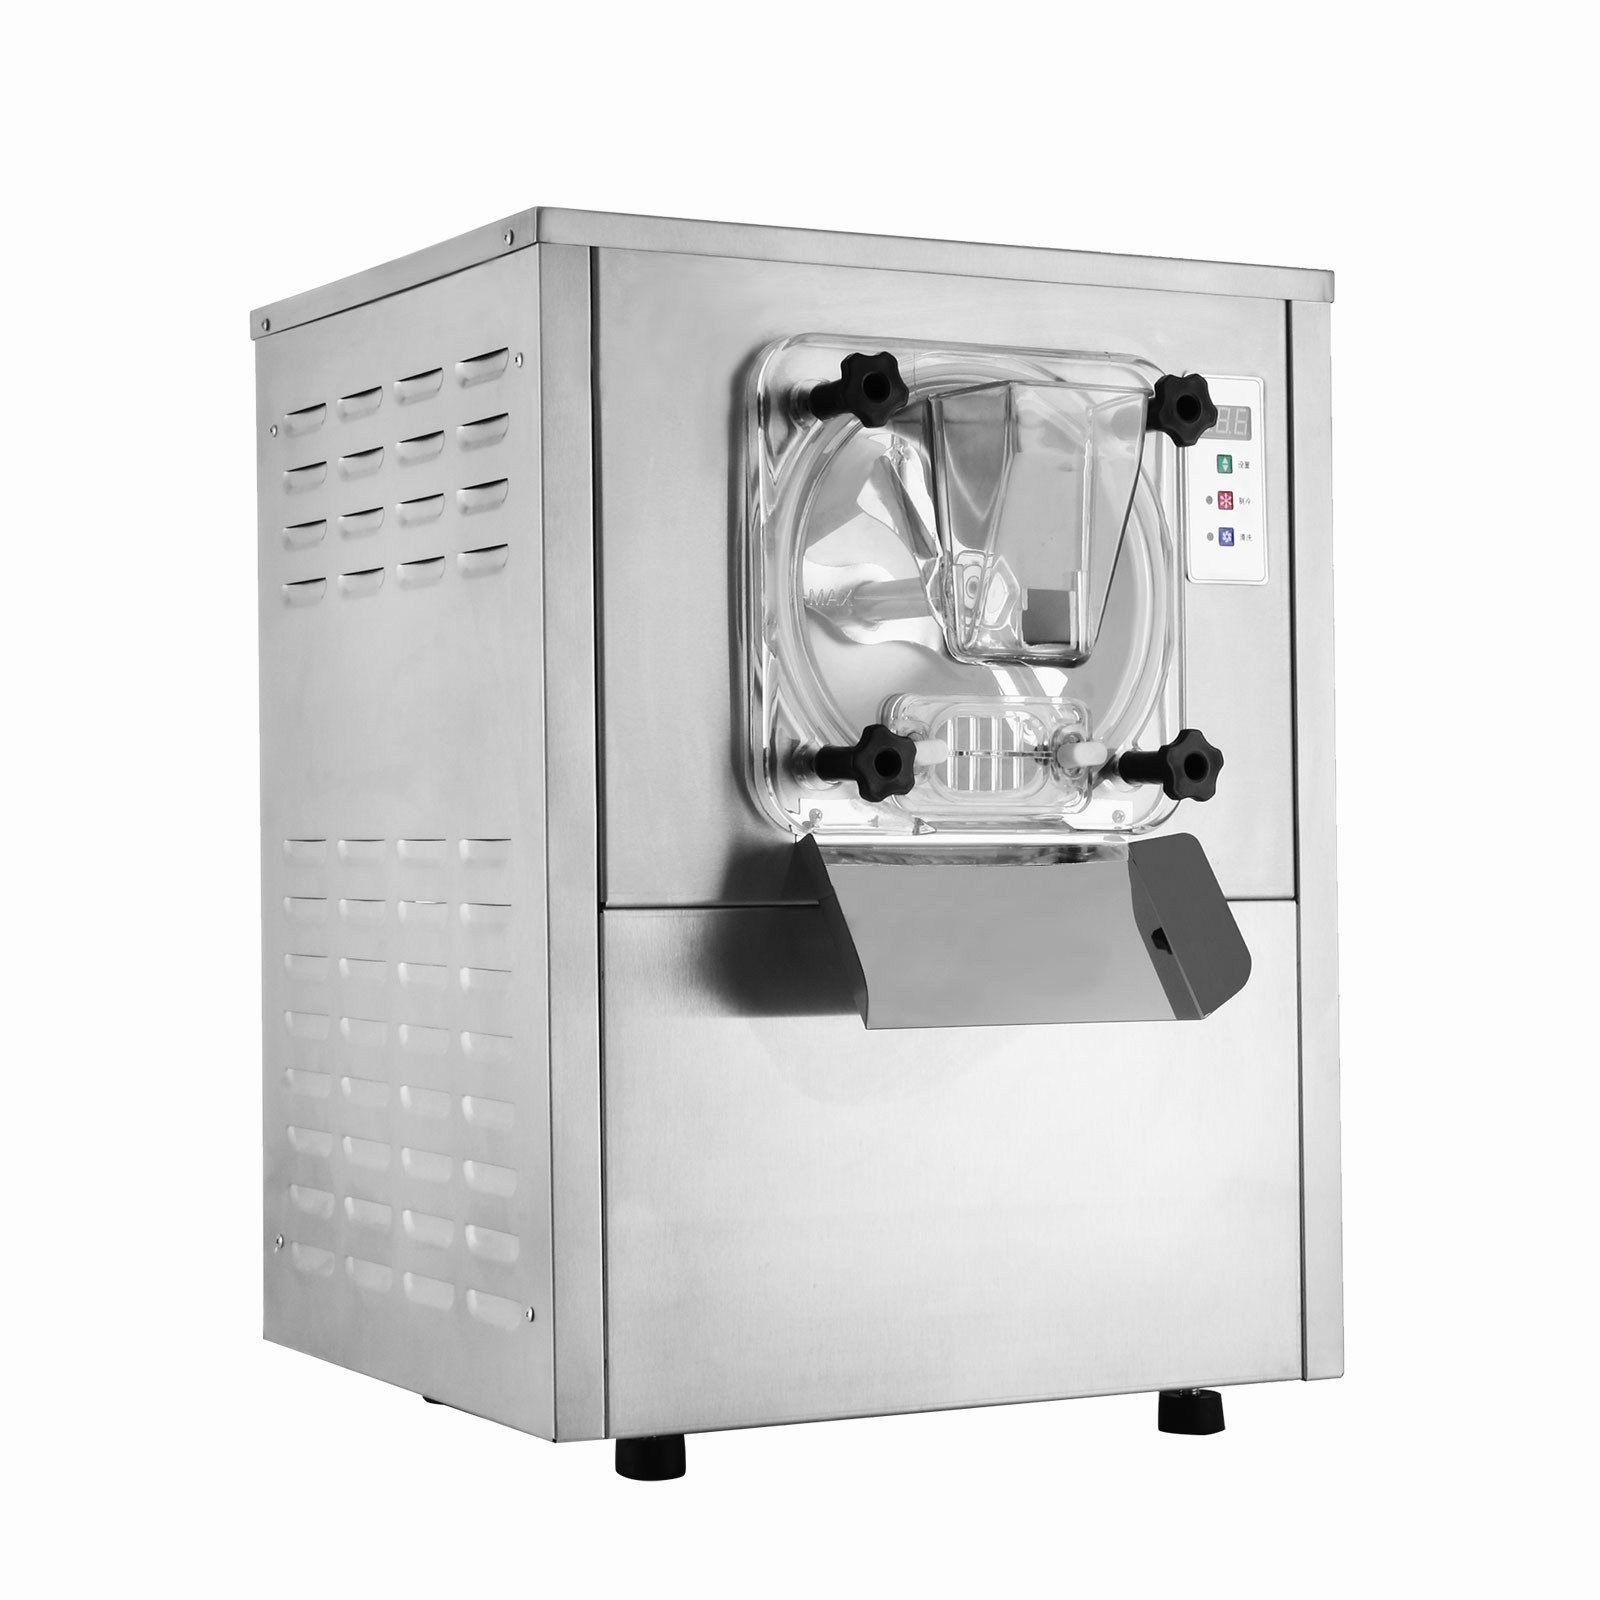 Forkwin Ice Cream Maker 1400W Ice Cream Machine 20L/H Ice Cream Maker Machine Stainless Steel Ice Cream Machine Commercial for Restaurant Coffee Shop